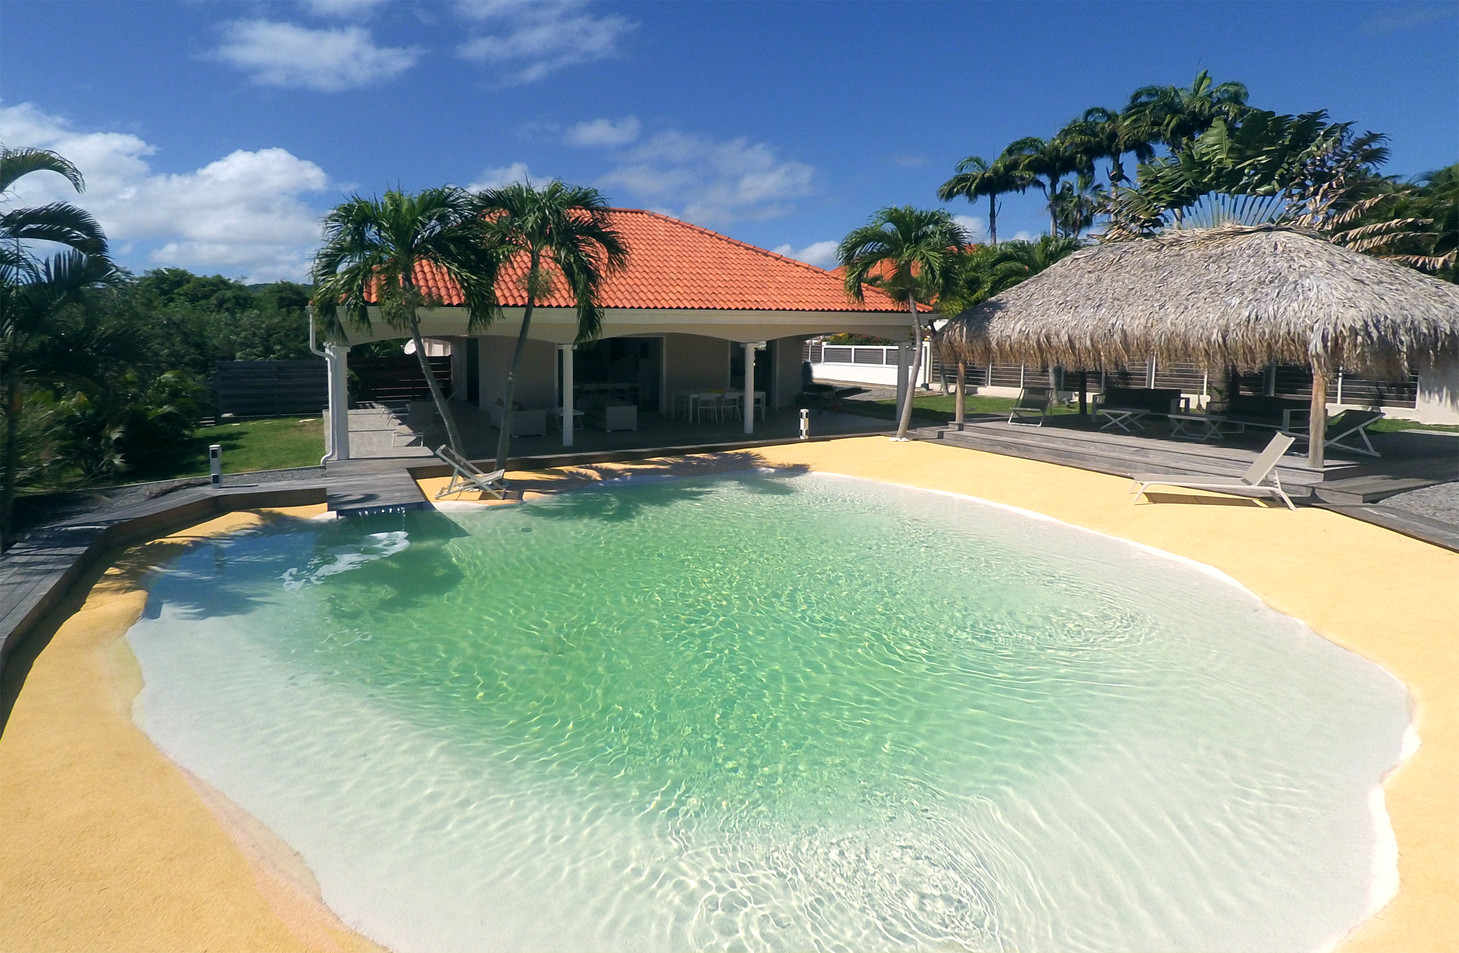 villa-carouge-martinique-piscine-lagon-m